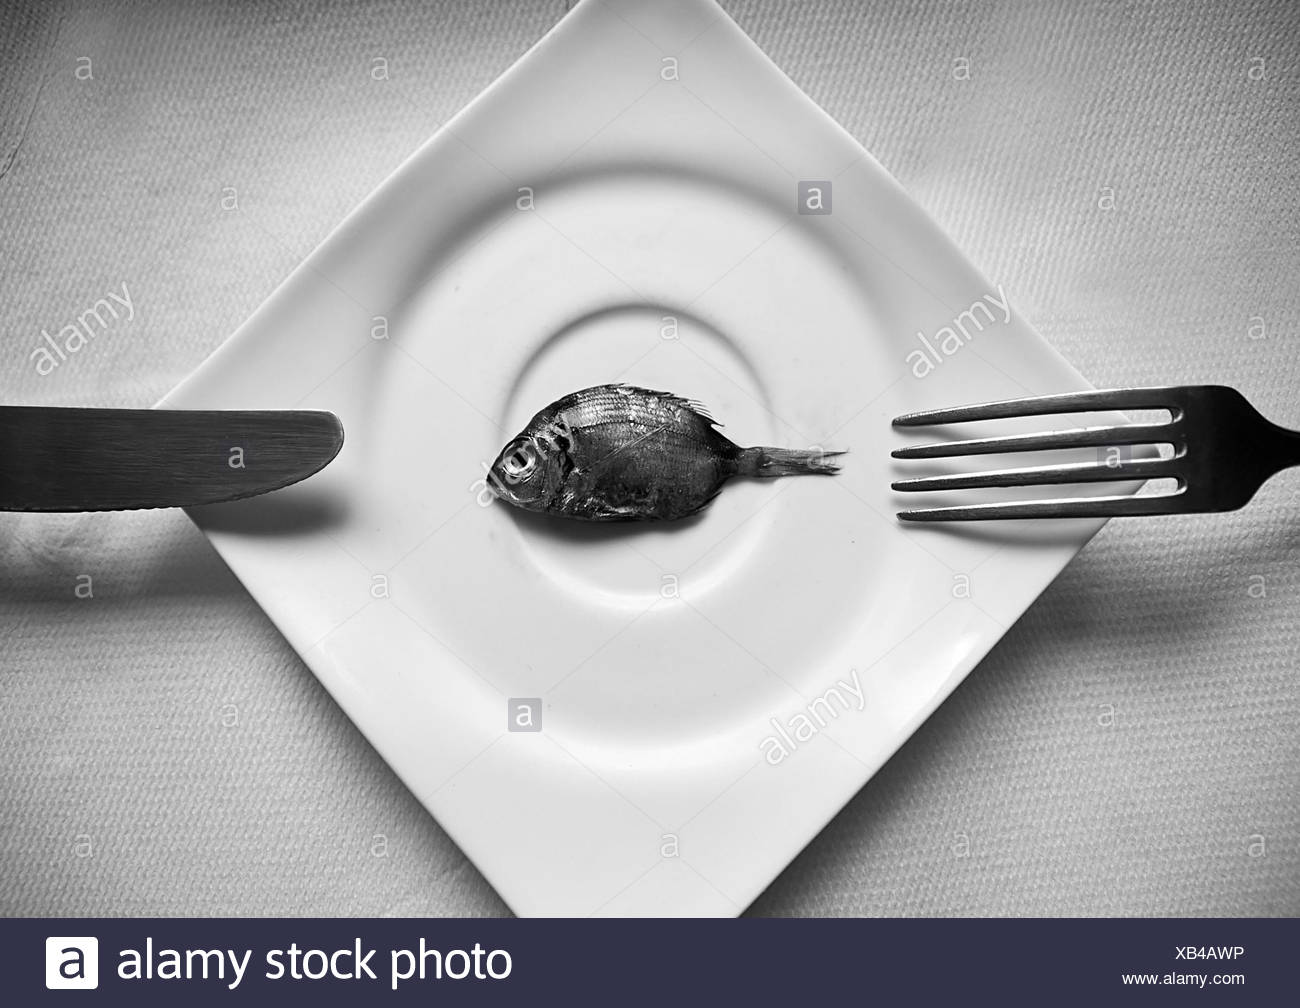 Small fish on a plate with cutlery - Stock Image